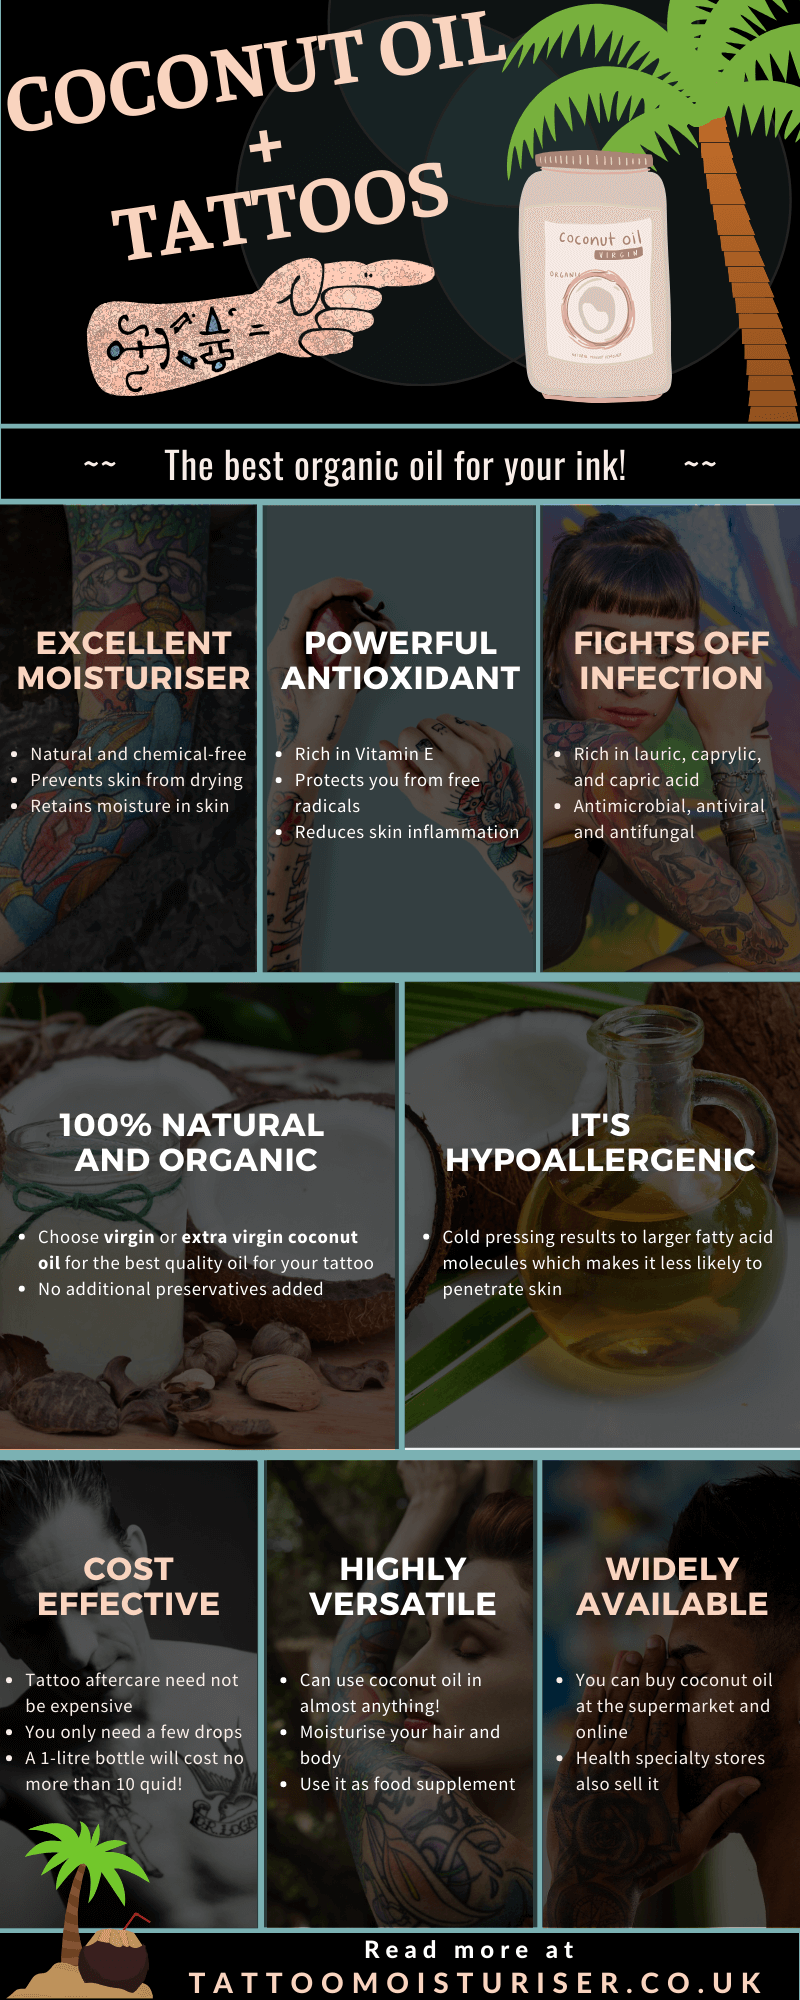 Infographic summarising the benefits of using coconut oil on tattoos